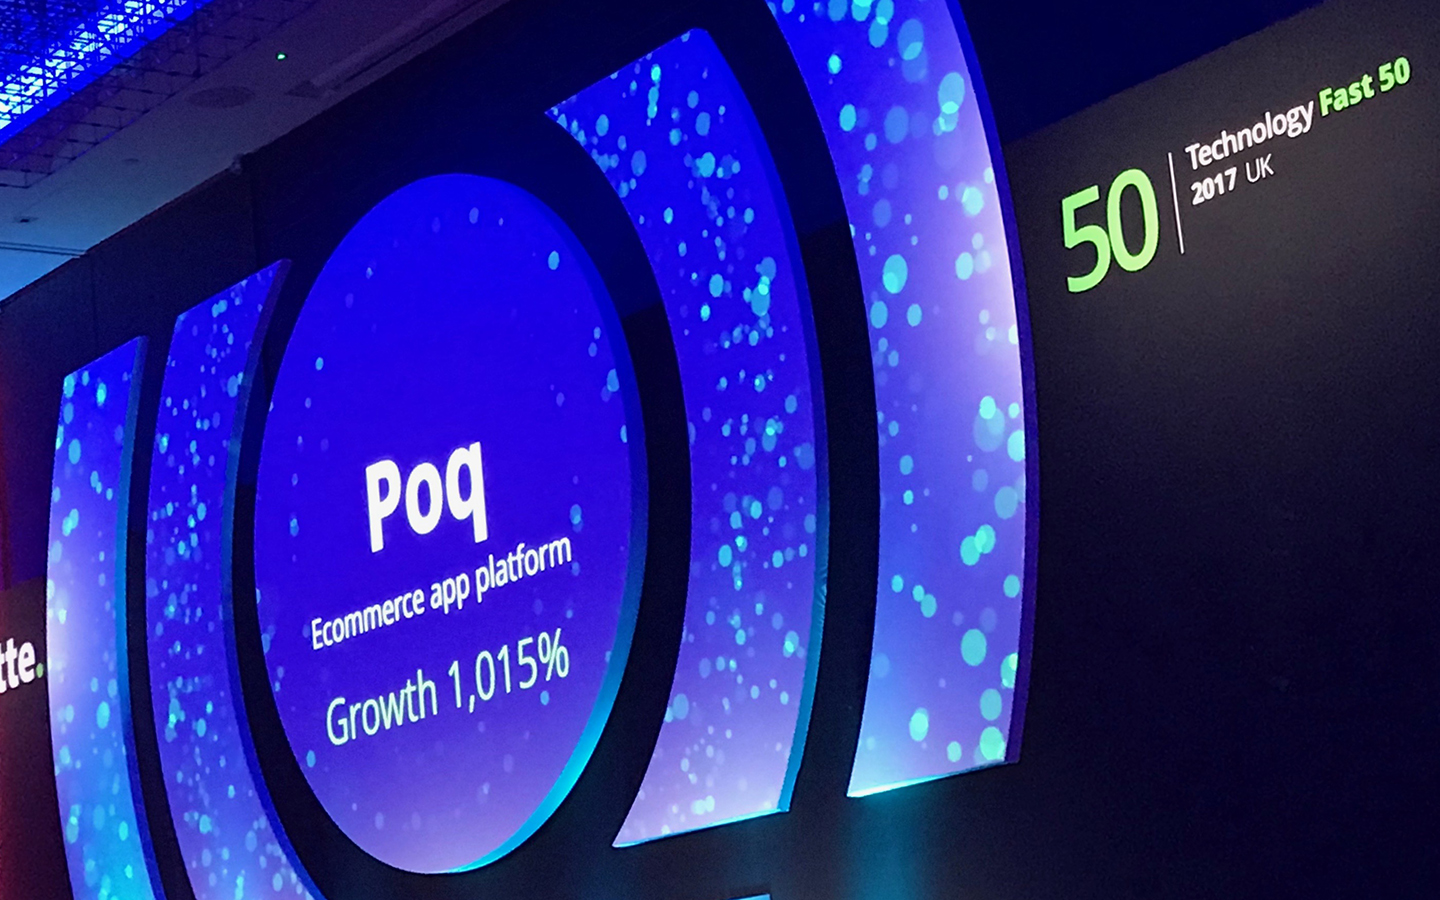 Poq on screen at Deloitte Fast50 Awards